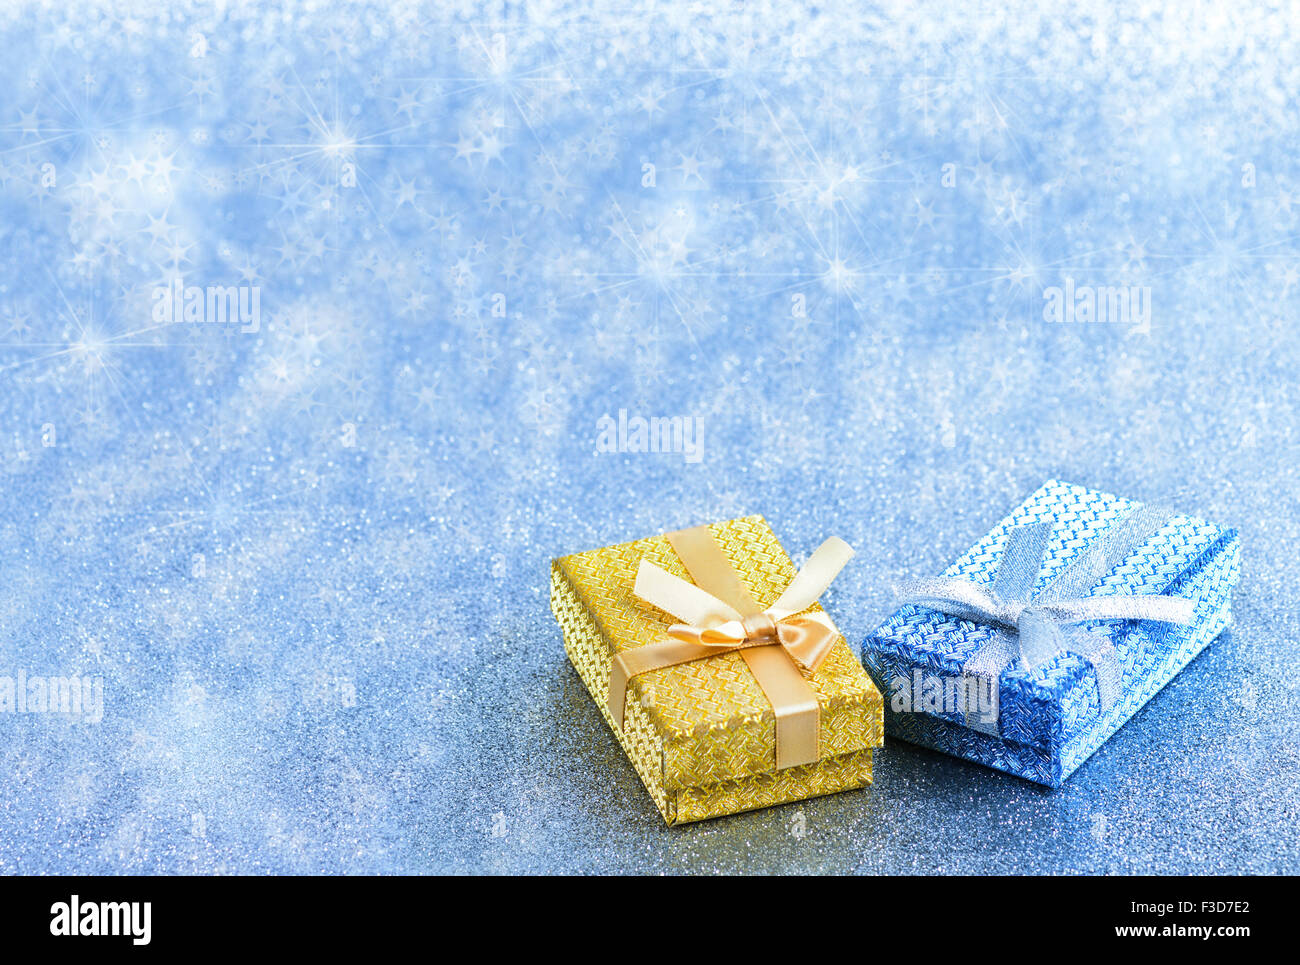 Abstract winter blue christmas holiday background - Stock Image